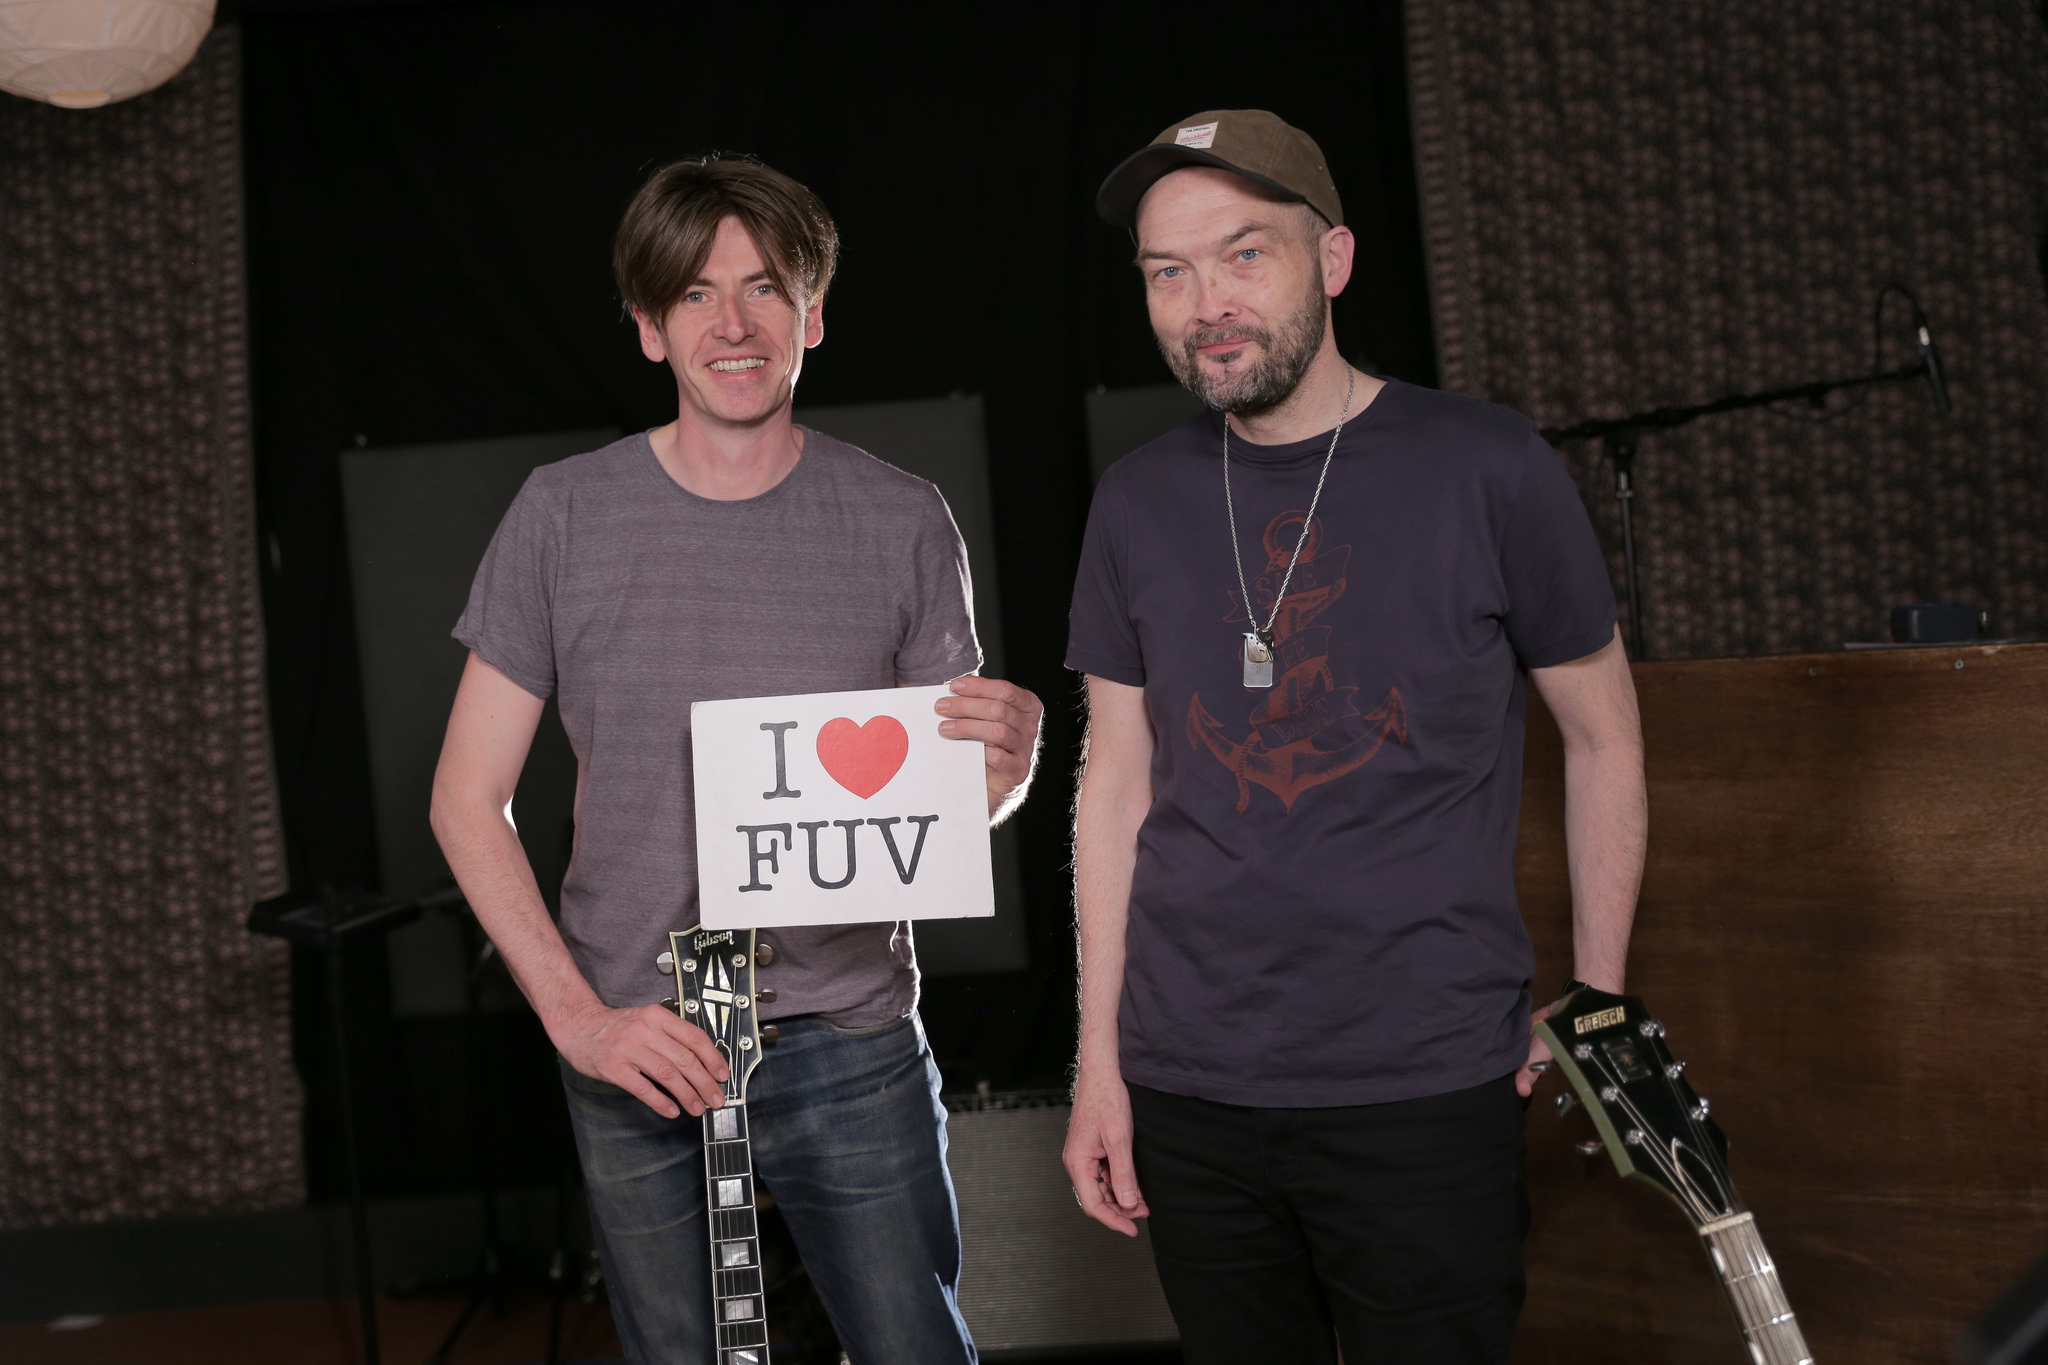 Hear an FUV Live session with Ben Watt tonight at 9.